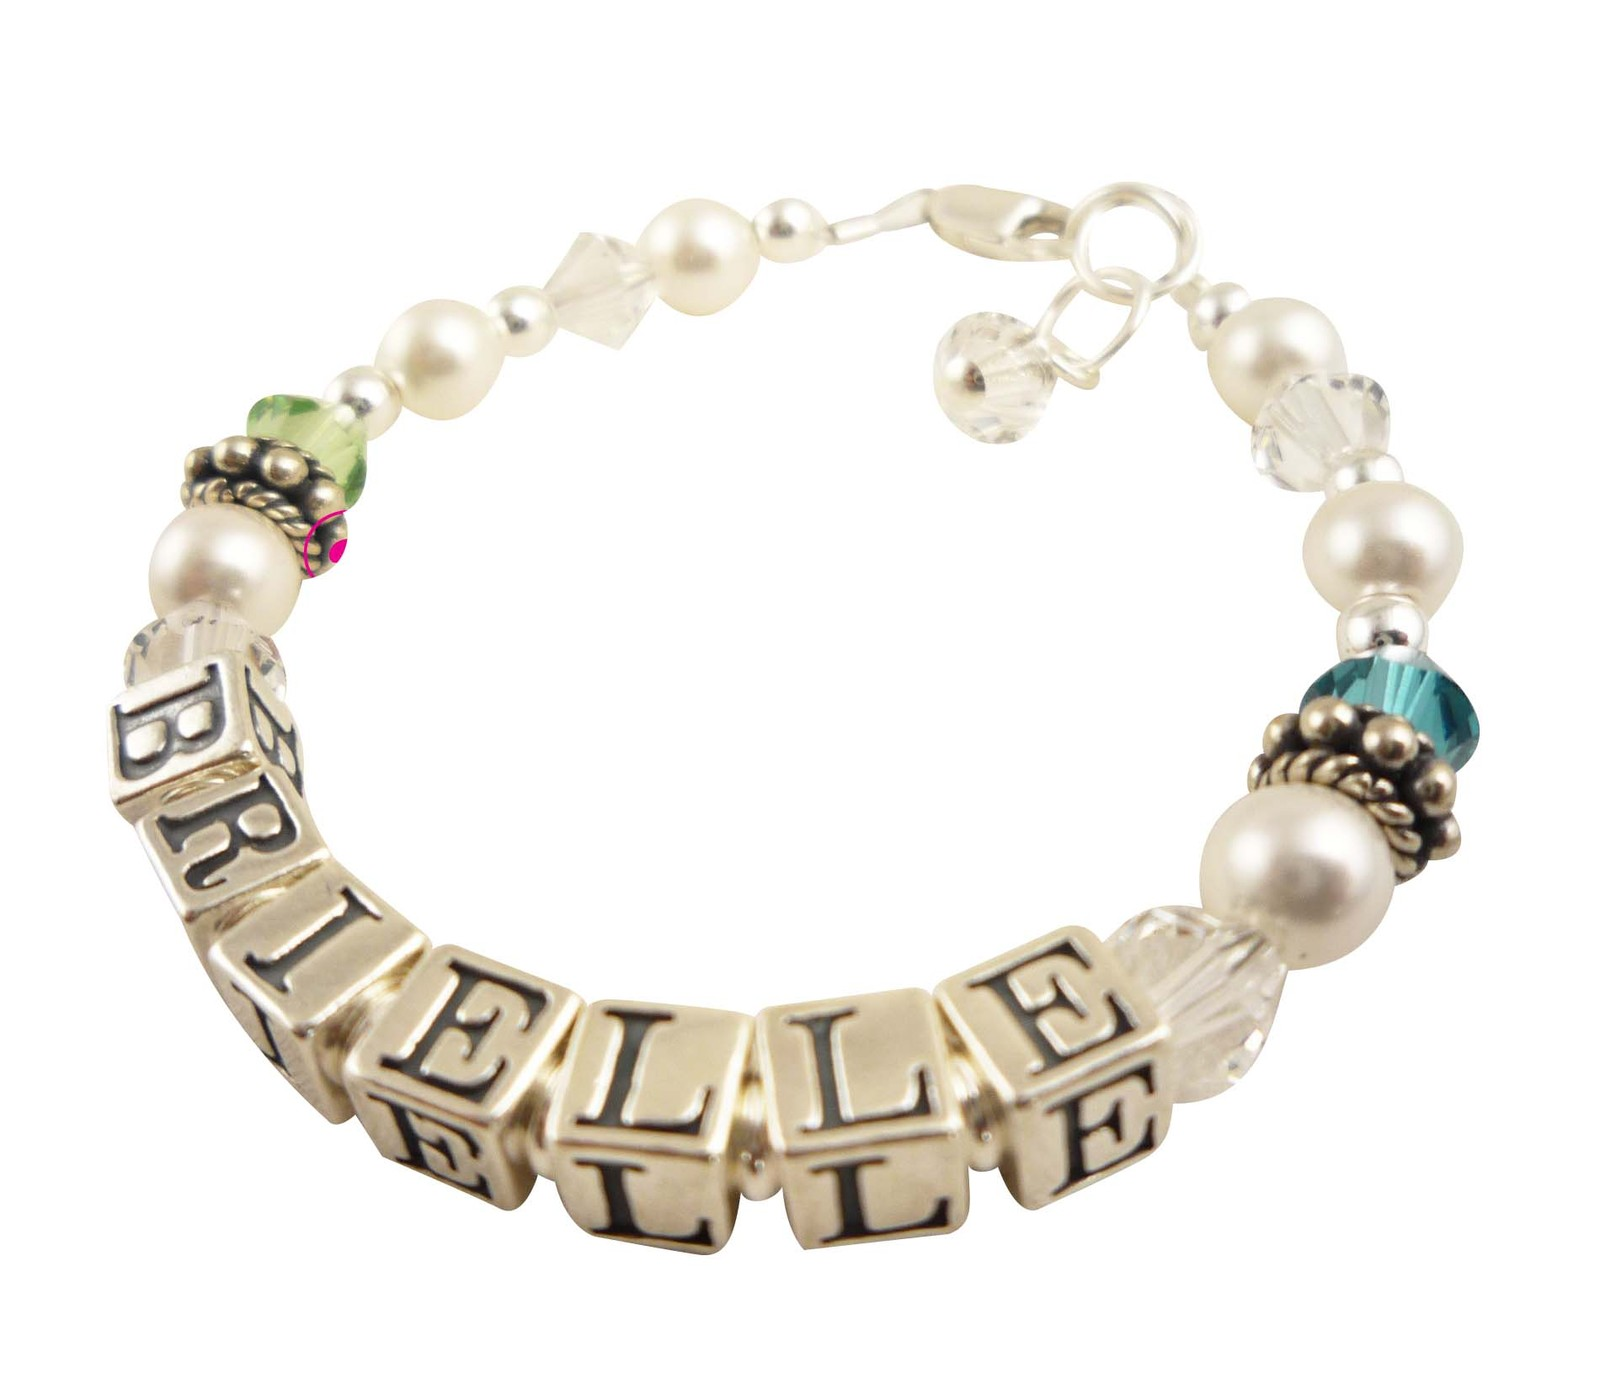 Blue & Green Pearl Girl's Sterling Silver Name ID Bracelet